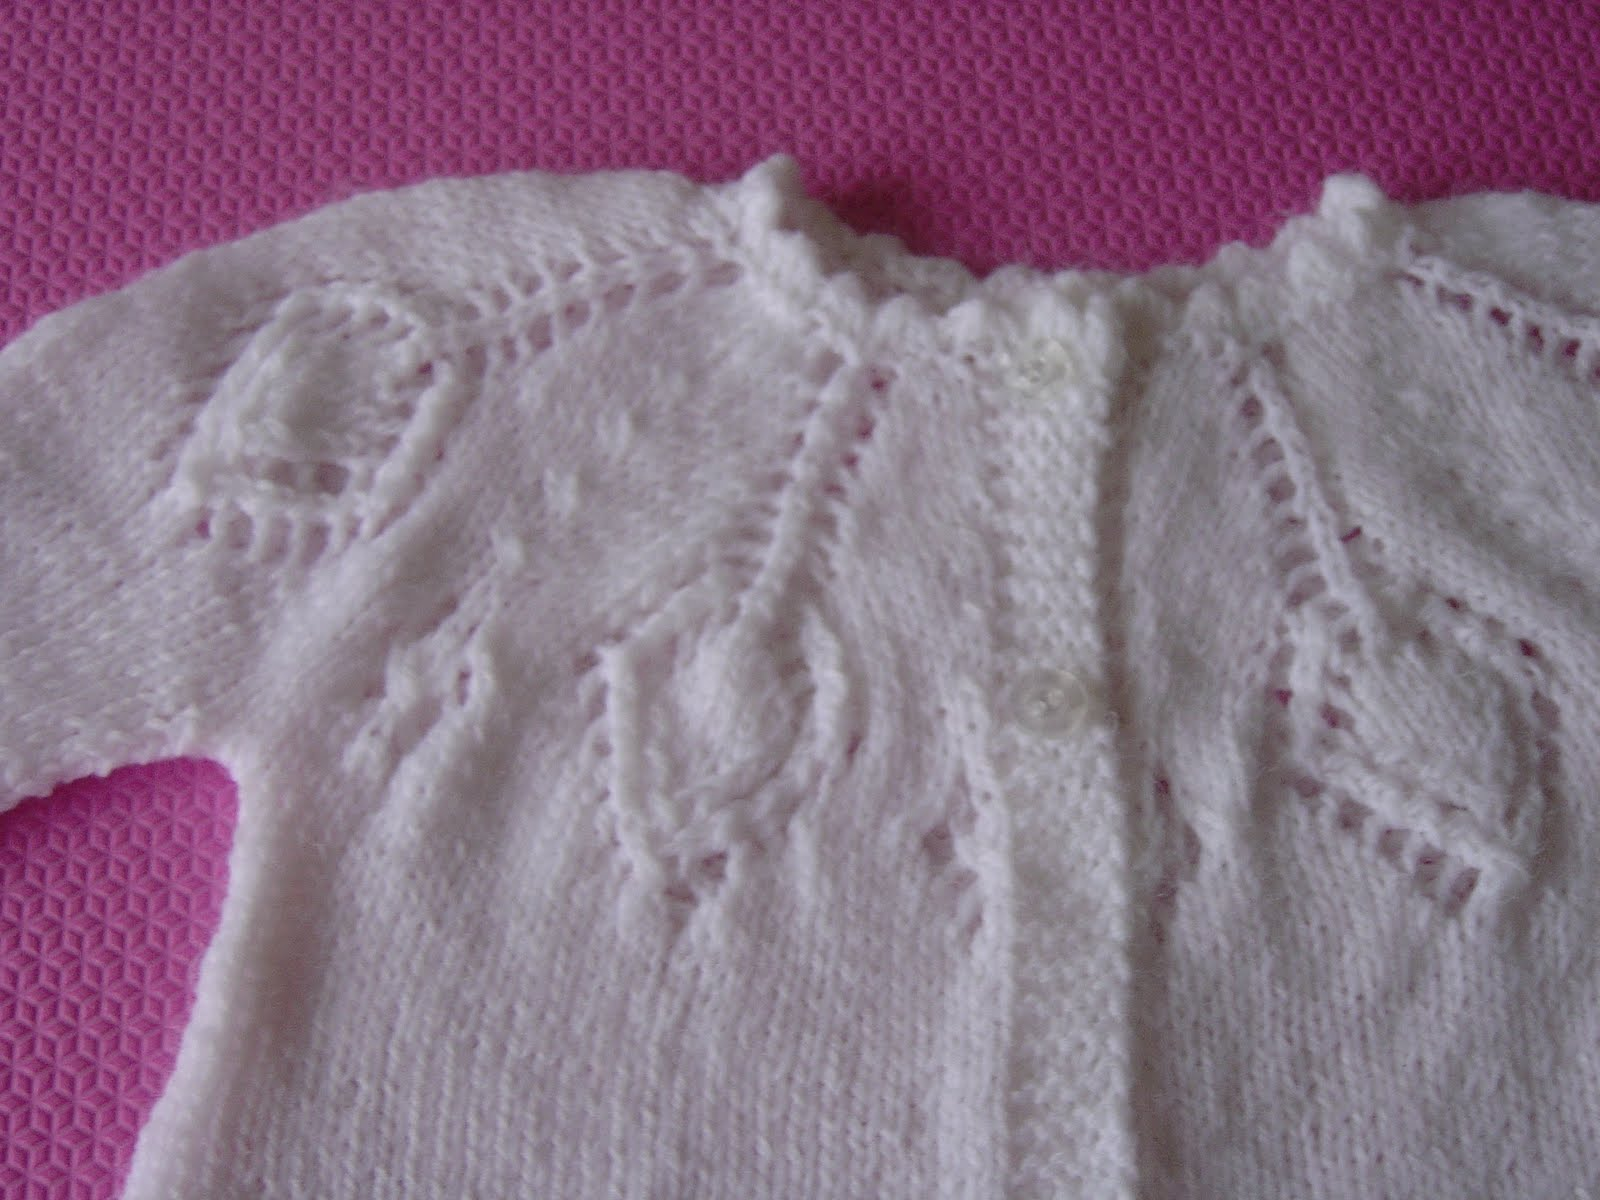 Knitting Pattern Baby Cardigan Free : free baby knitting patterns - Music Search Engine at Search.com